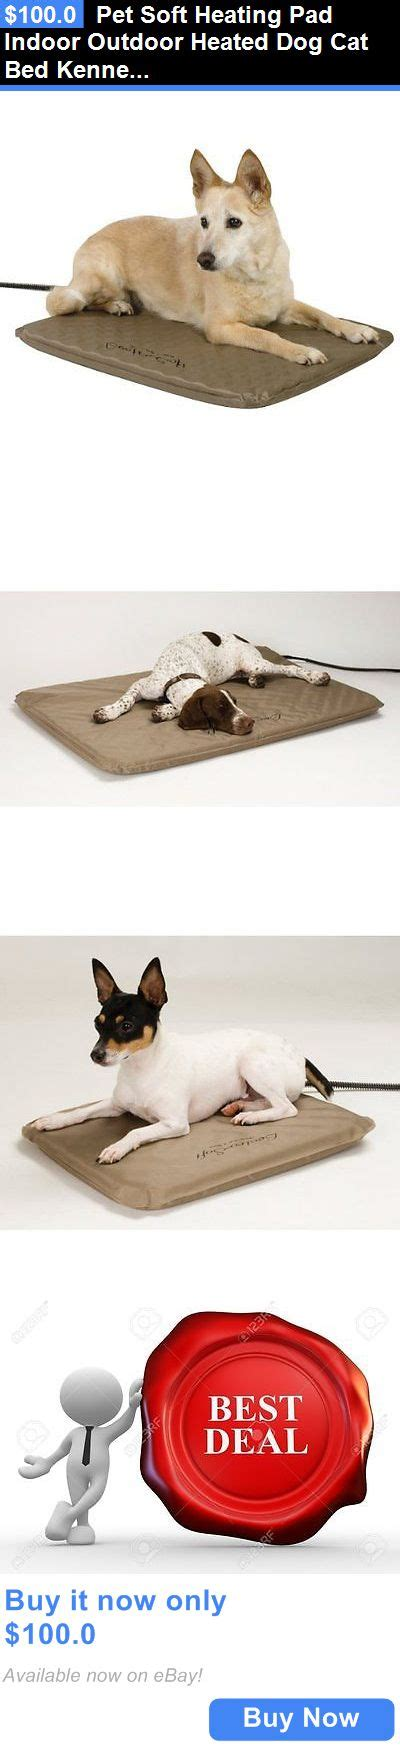 outdoor heated cat bed 1000 ideas about heated dog bed on pinterest heated pet